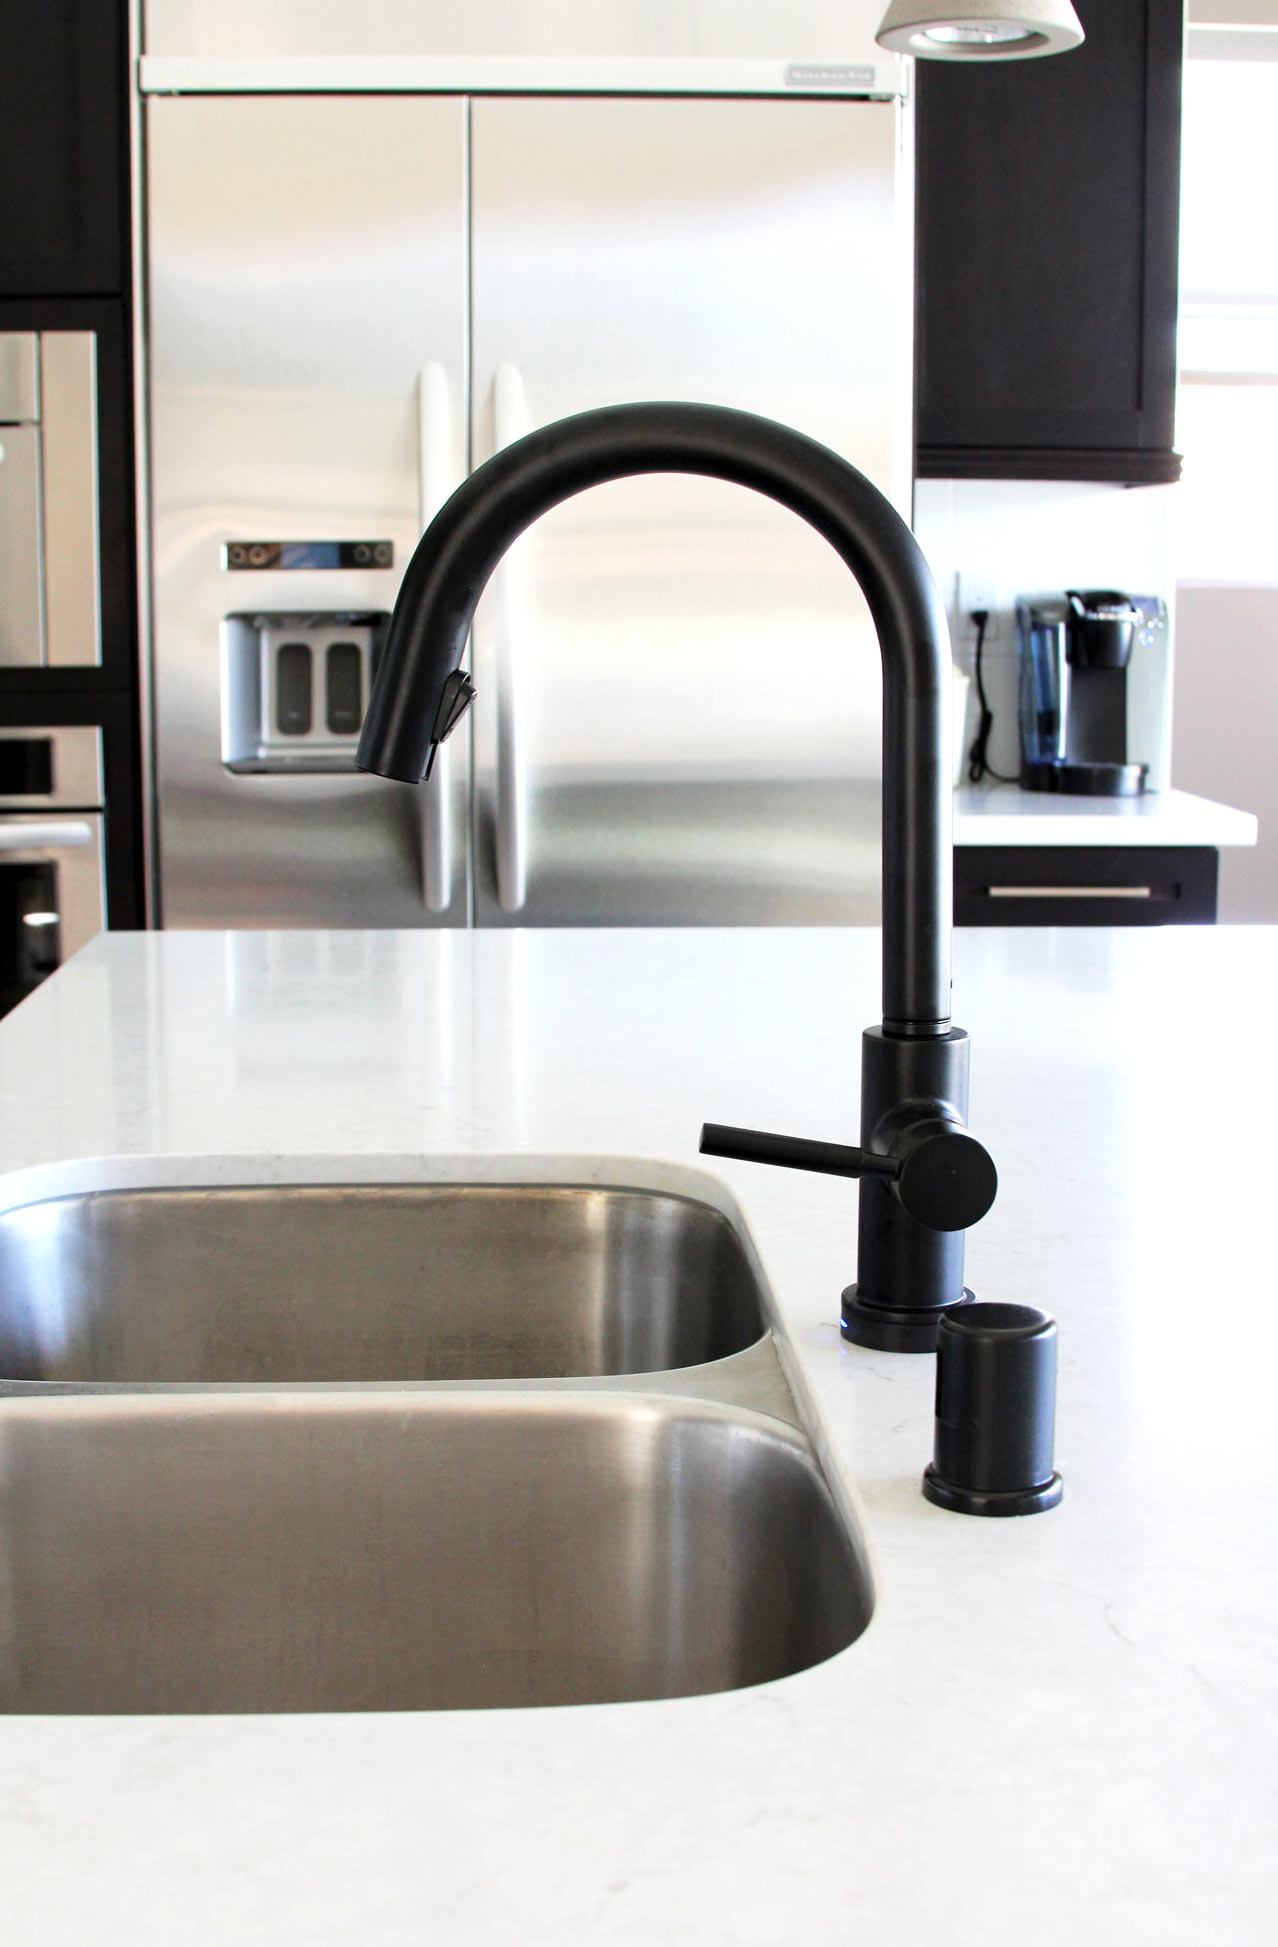 Black Kitchen Faucets : Black Kitchen Faucets At Faucet Depot Pictures to pin on Pinterest